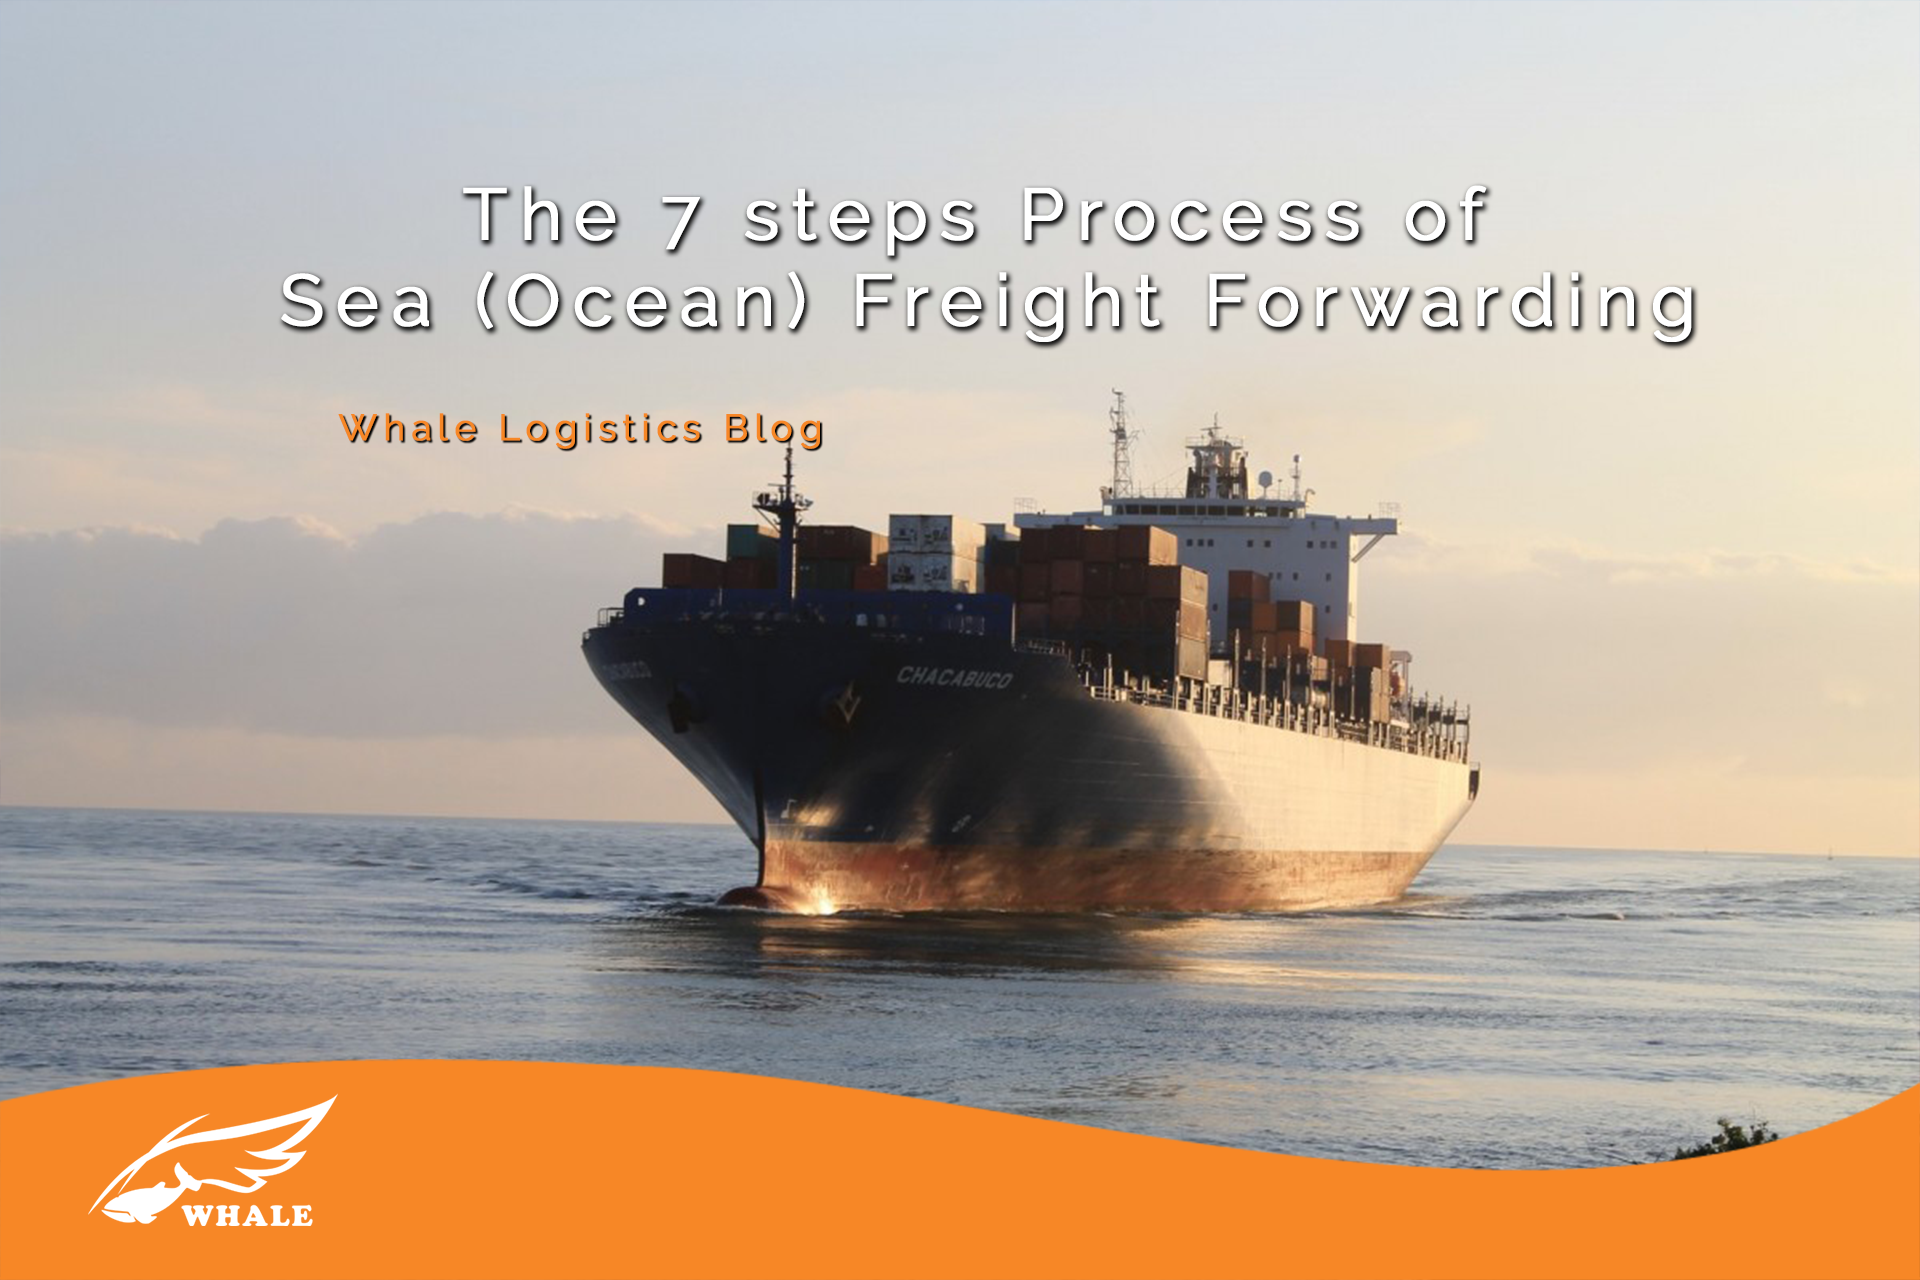 The 7 steps Process of Sea (Ocean) Freight Forwarding | Whale Logistics Blog